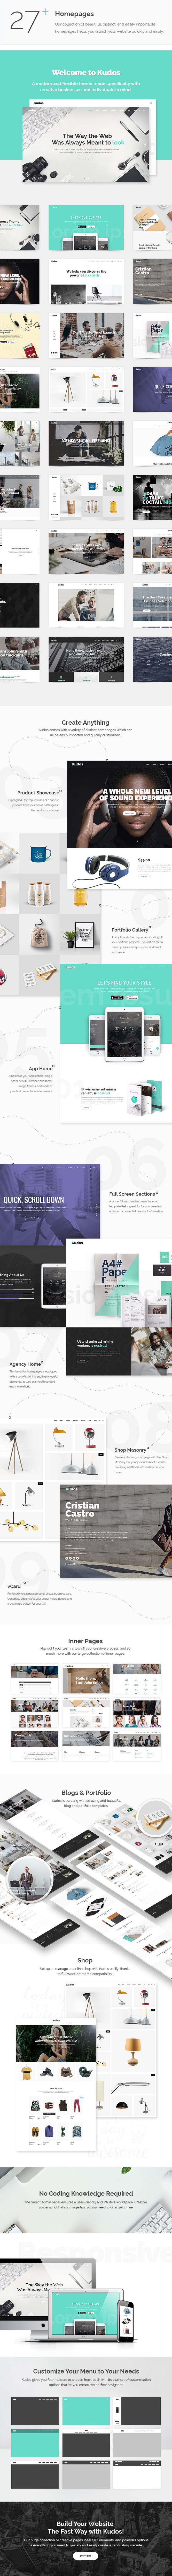 Kudos - Marketing Agency Theme - 1